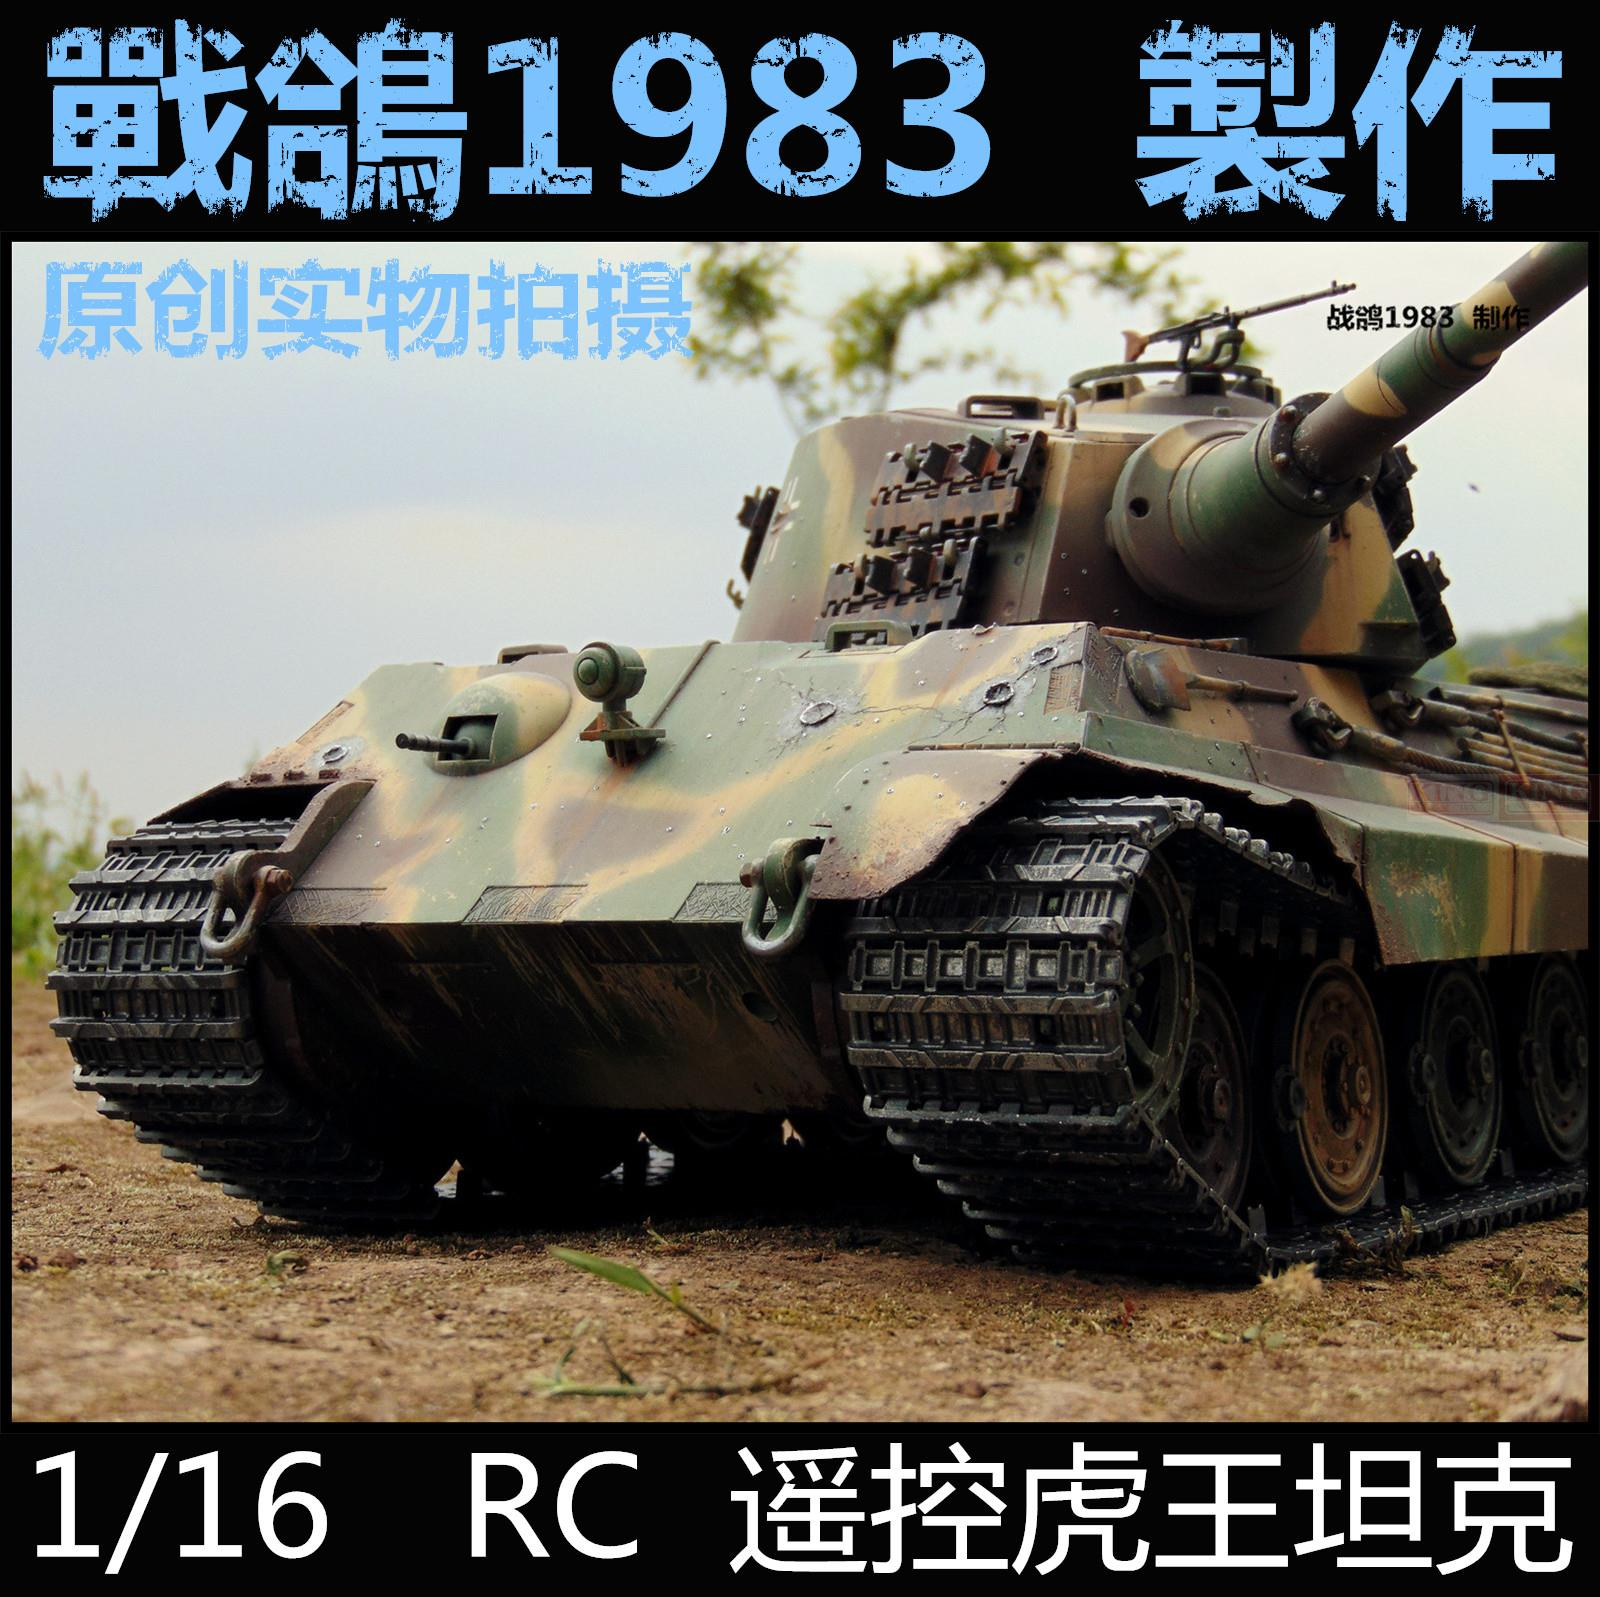 KNL HOBBY <font><b>Heng</b></font> <font><b>Long</b></font> 1/16 <font><b>RC</b></font> King Tiger <font><b>tank</b></font> model remote control OEM heavy coating of paint to do the old upgrade image